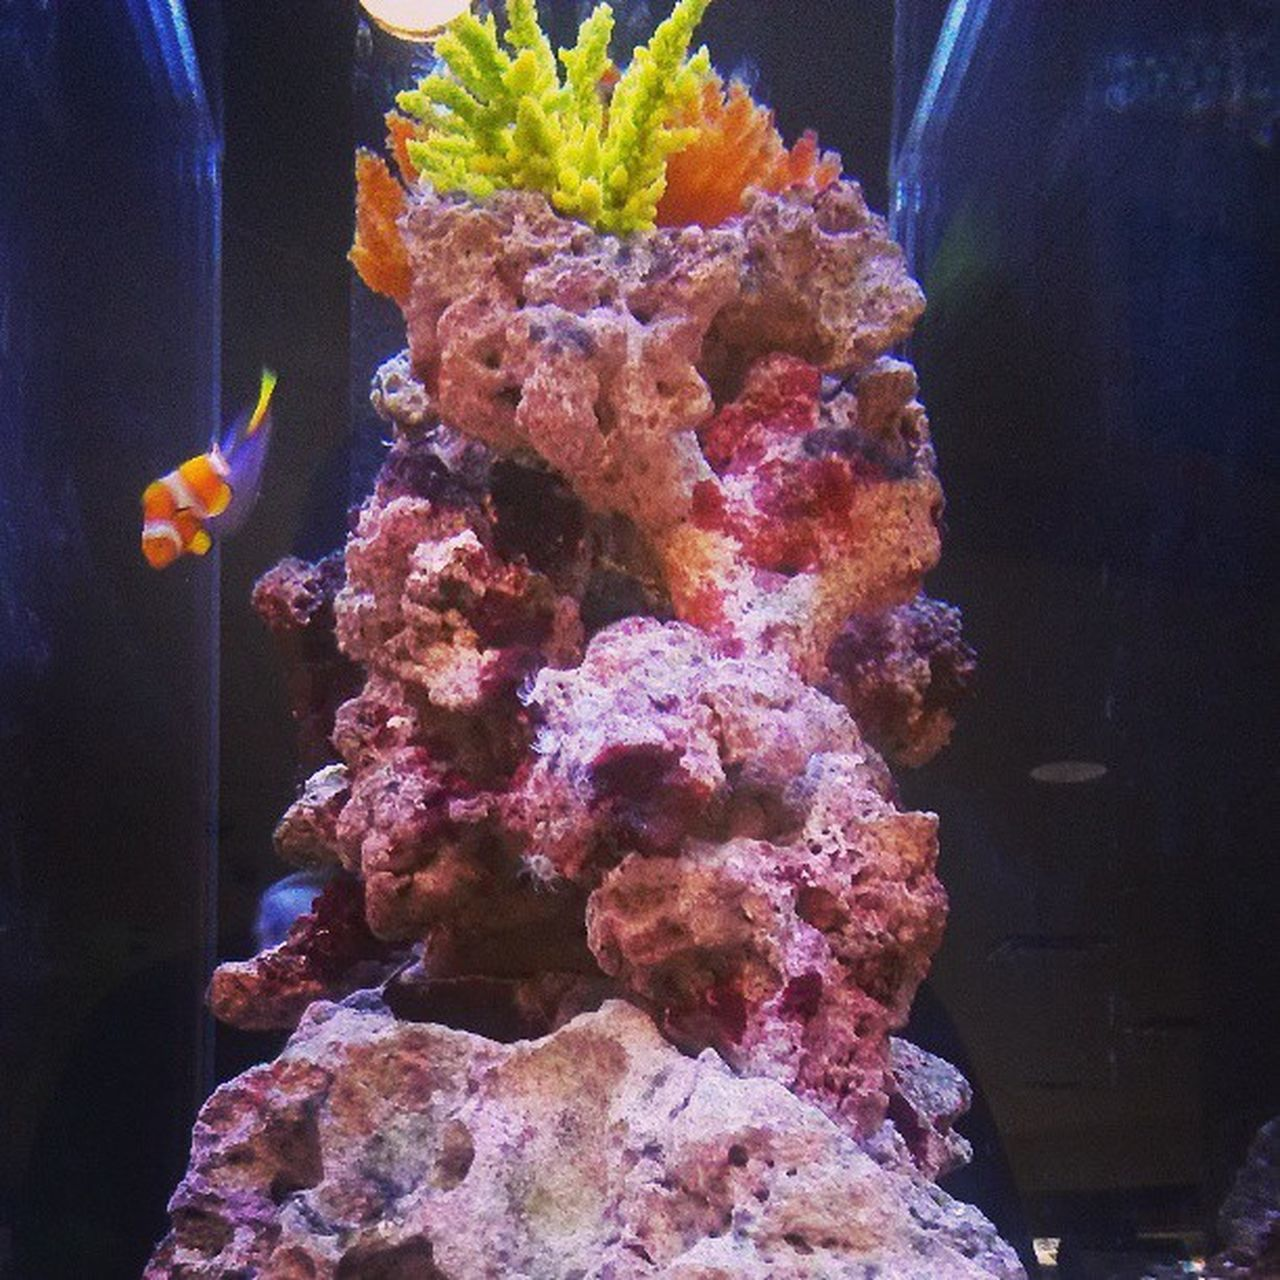 Aquarium Findingnemo Clownfish Dorie Nemo Fish Fishtank Water Rocks follow4follow